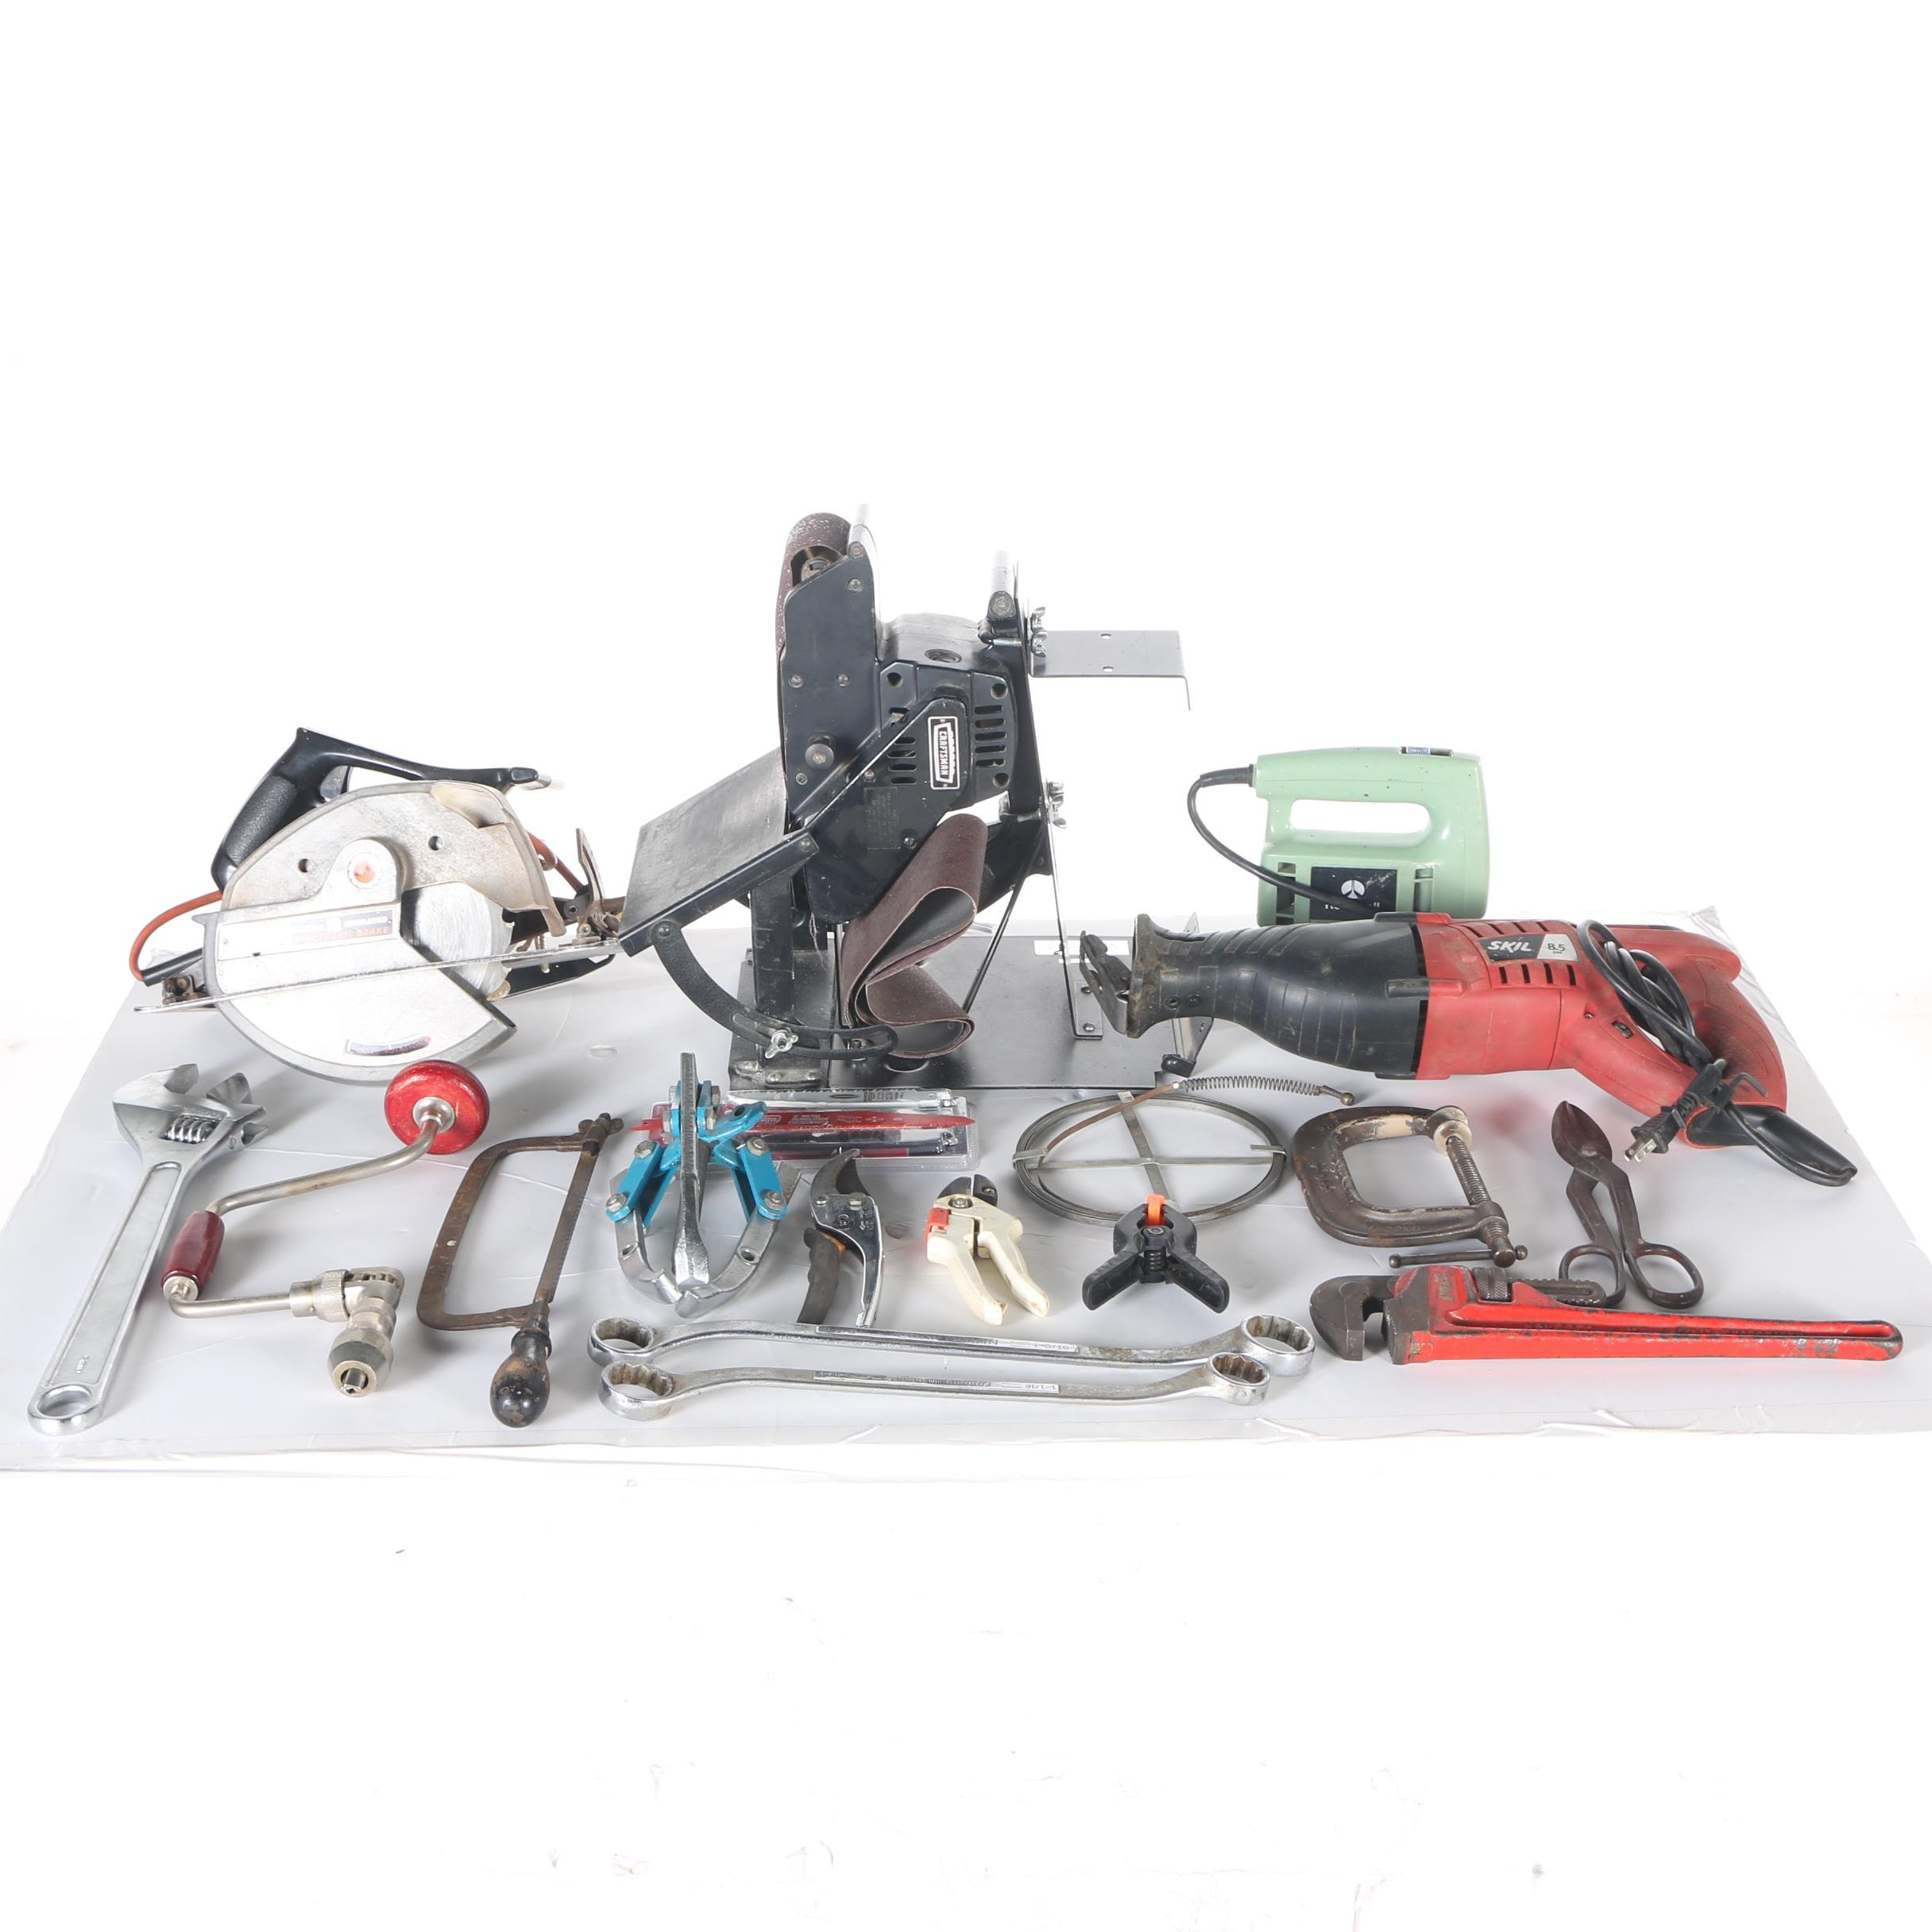 Assortment of Power and Manual Tools